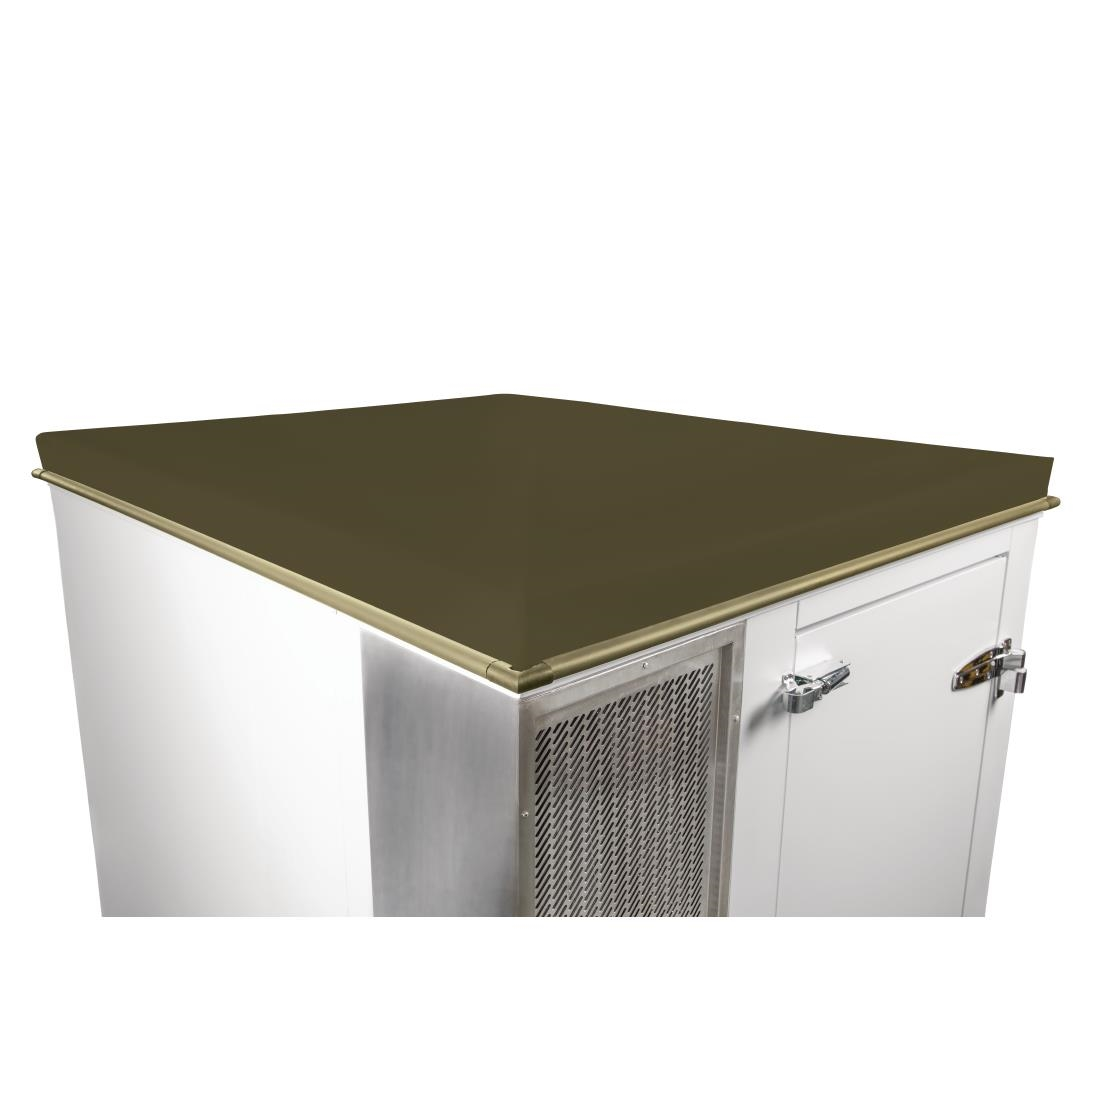 Image of Polar Weatherproof Roof For DS480 Cold Room Olive Green